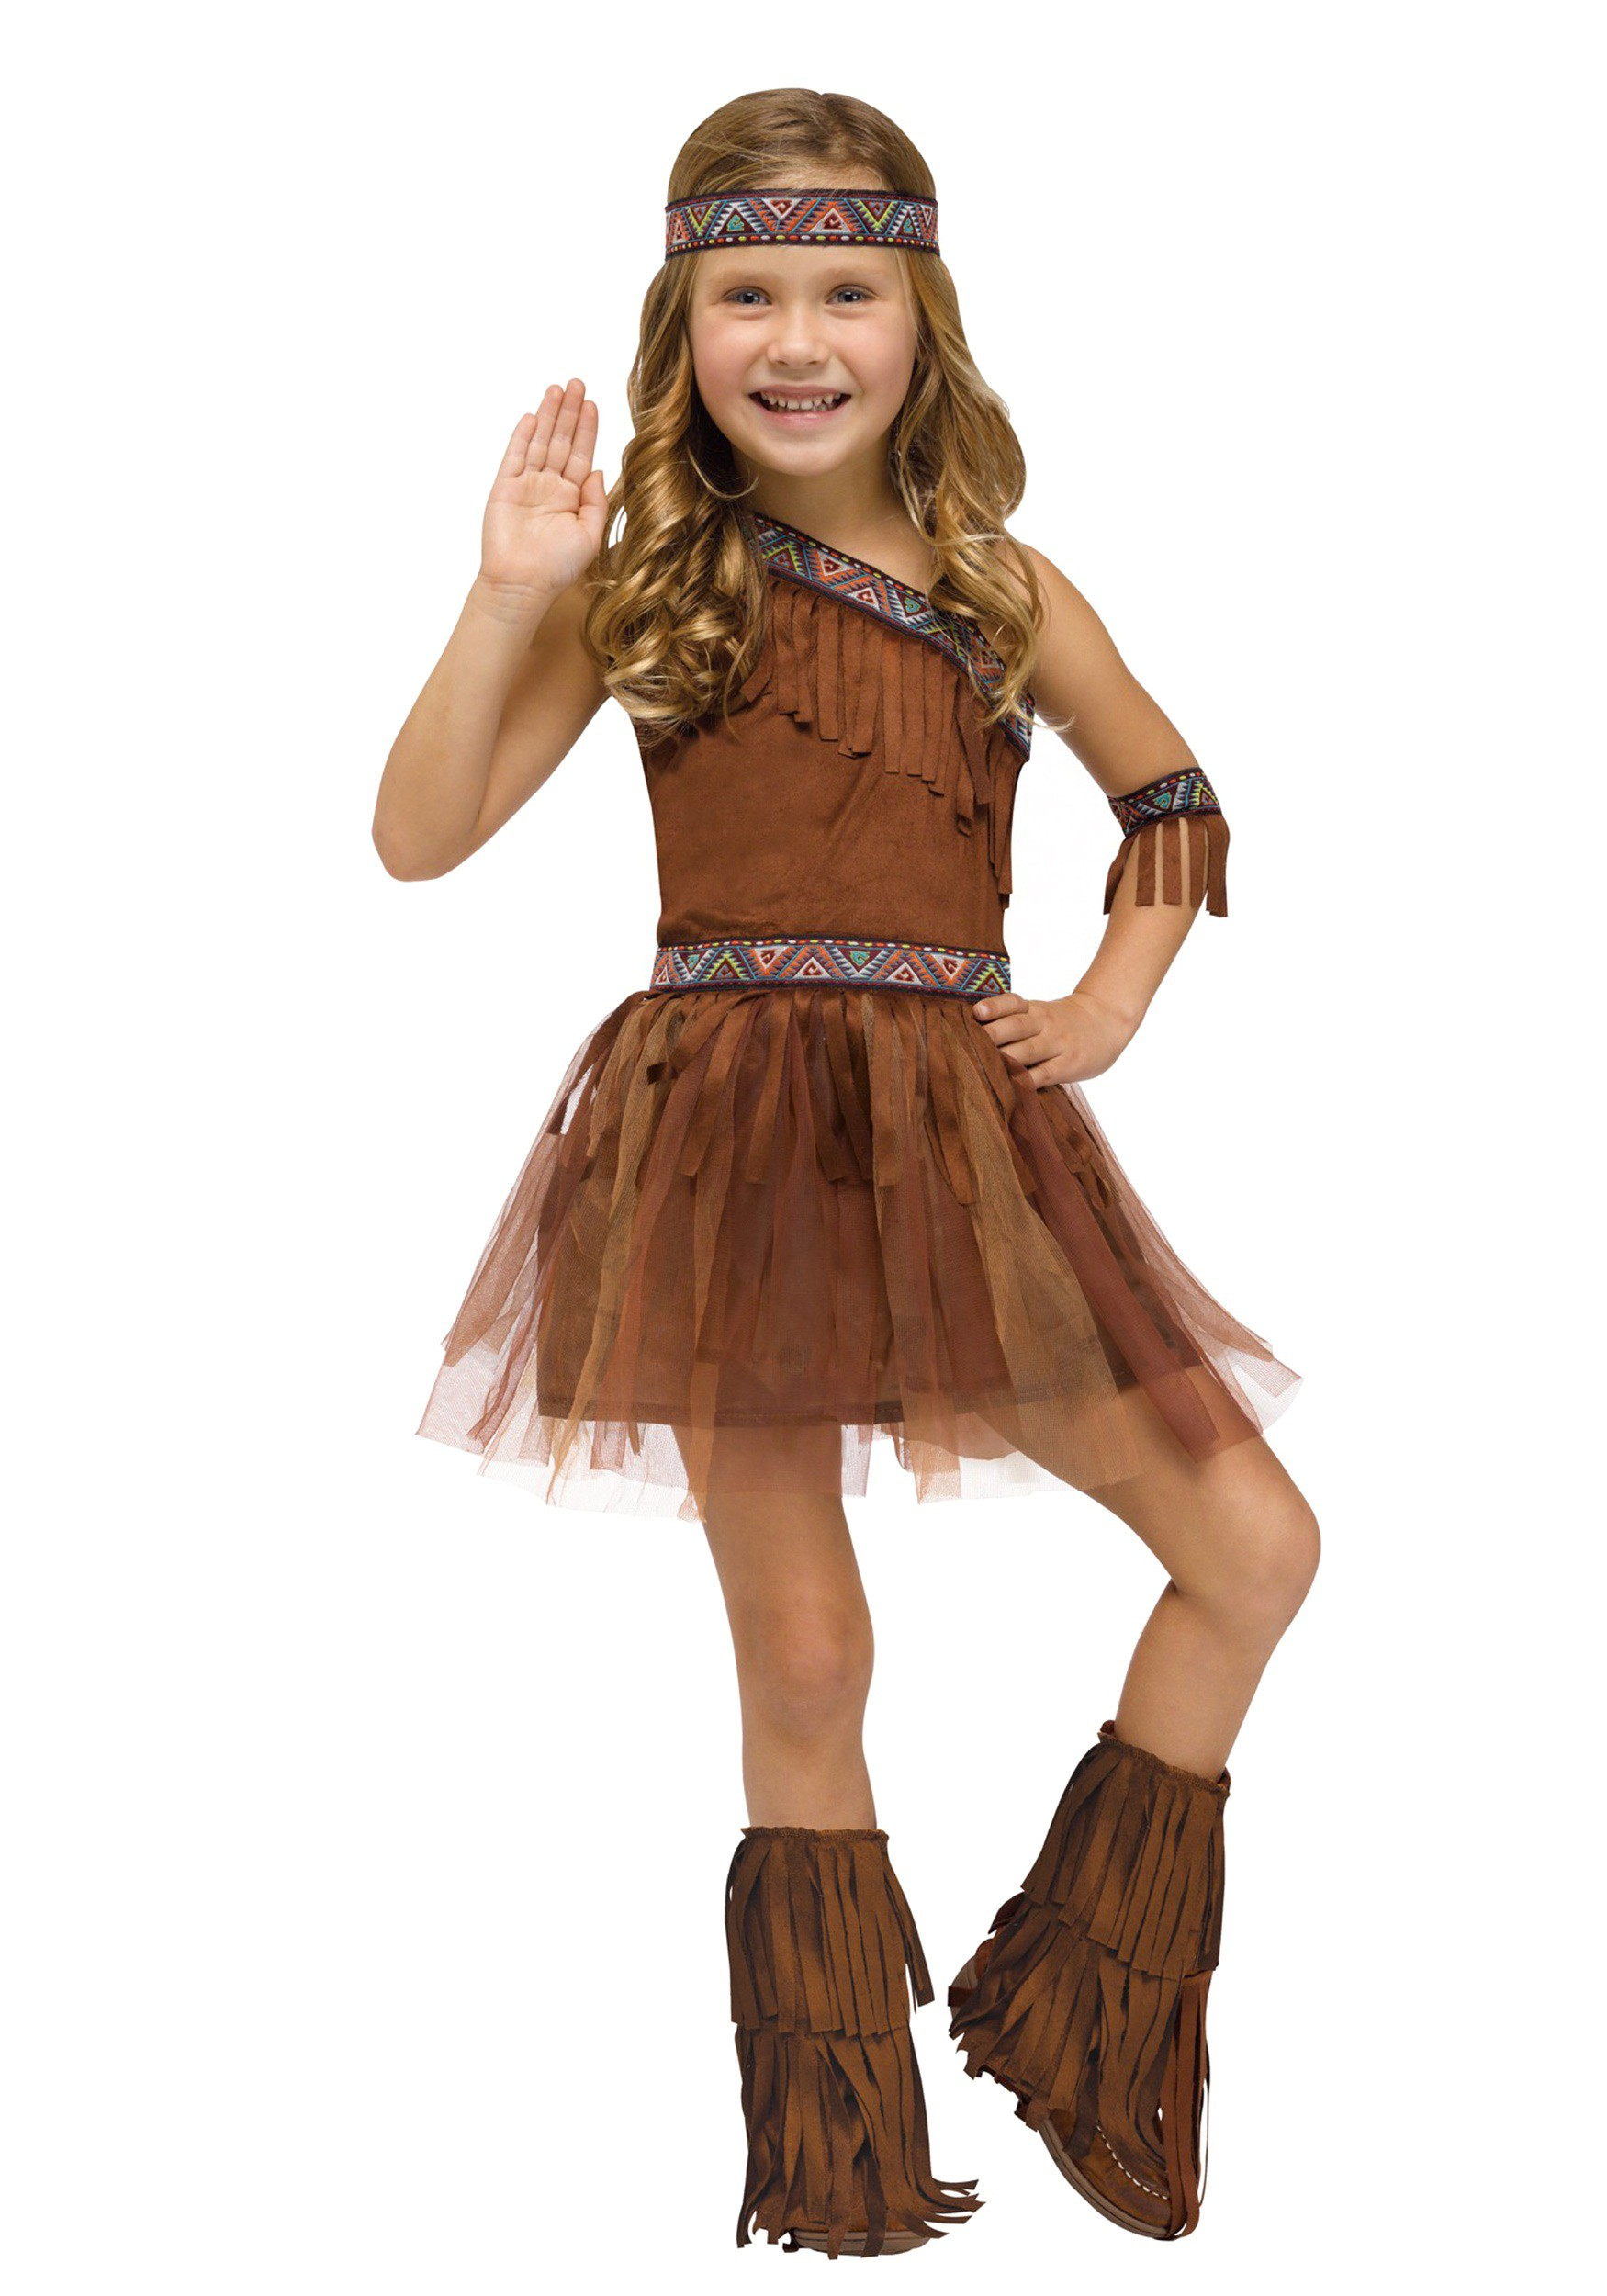 02e24036738ac Native American Costumes - HalloweenCostumes.com